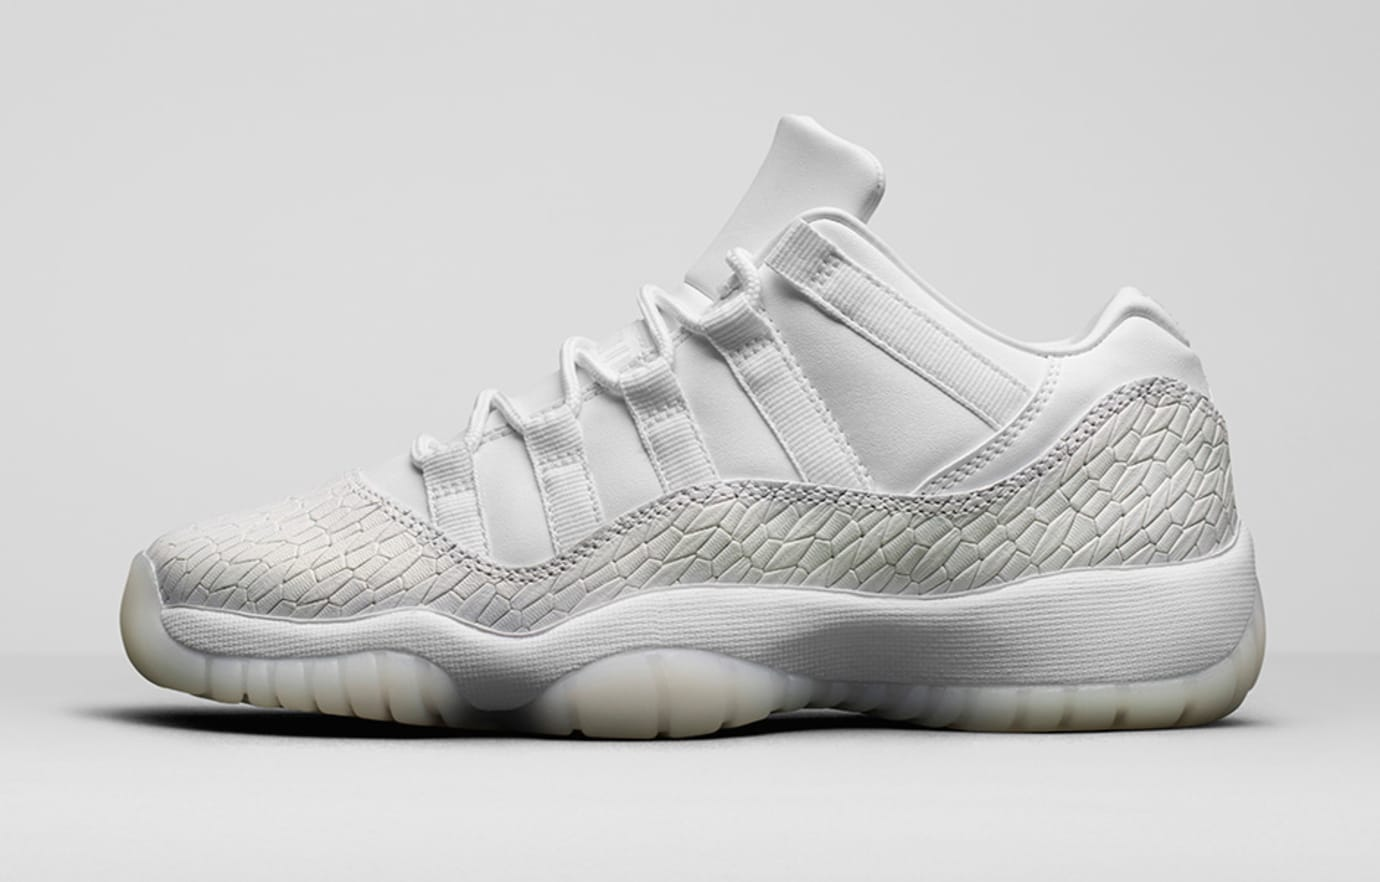 Heiress Air Jordan 11 Low White 897331-100 Profile